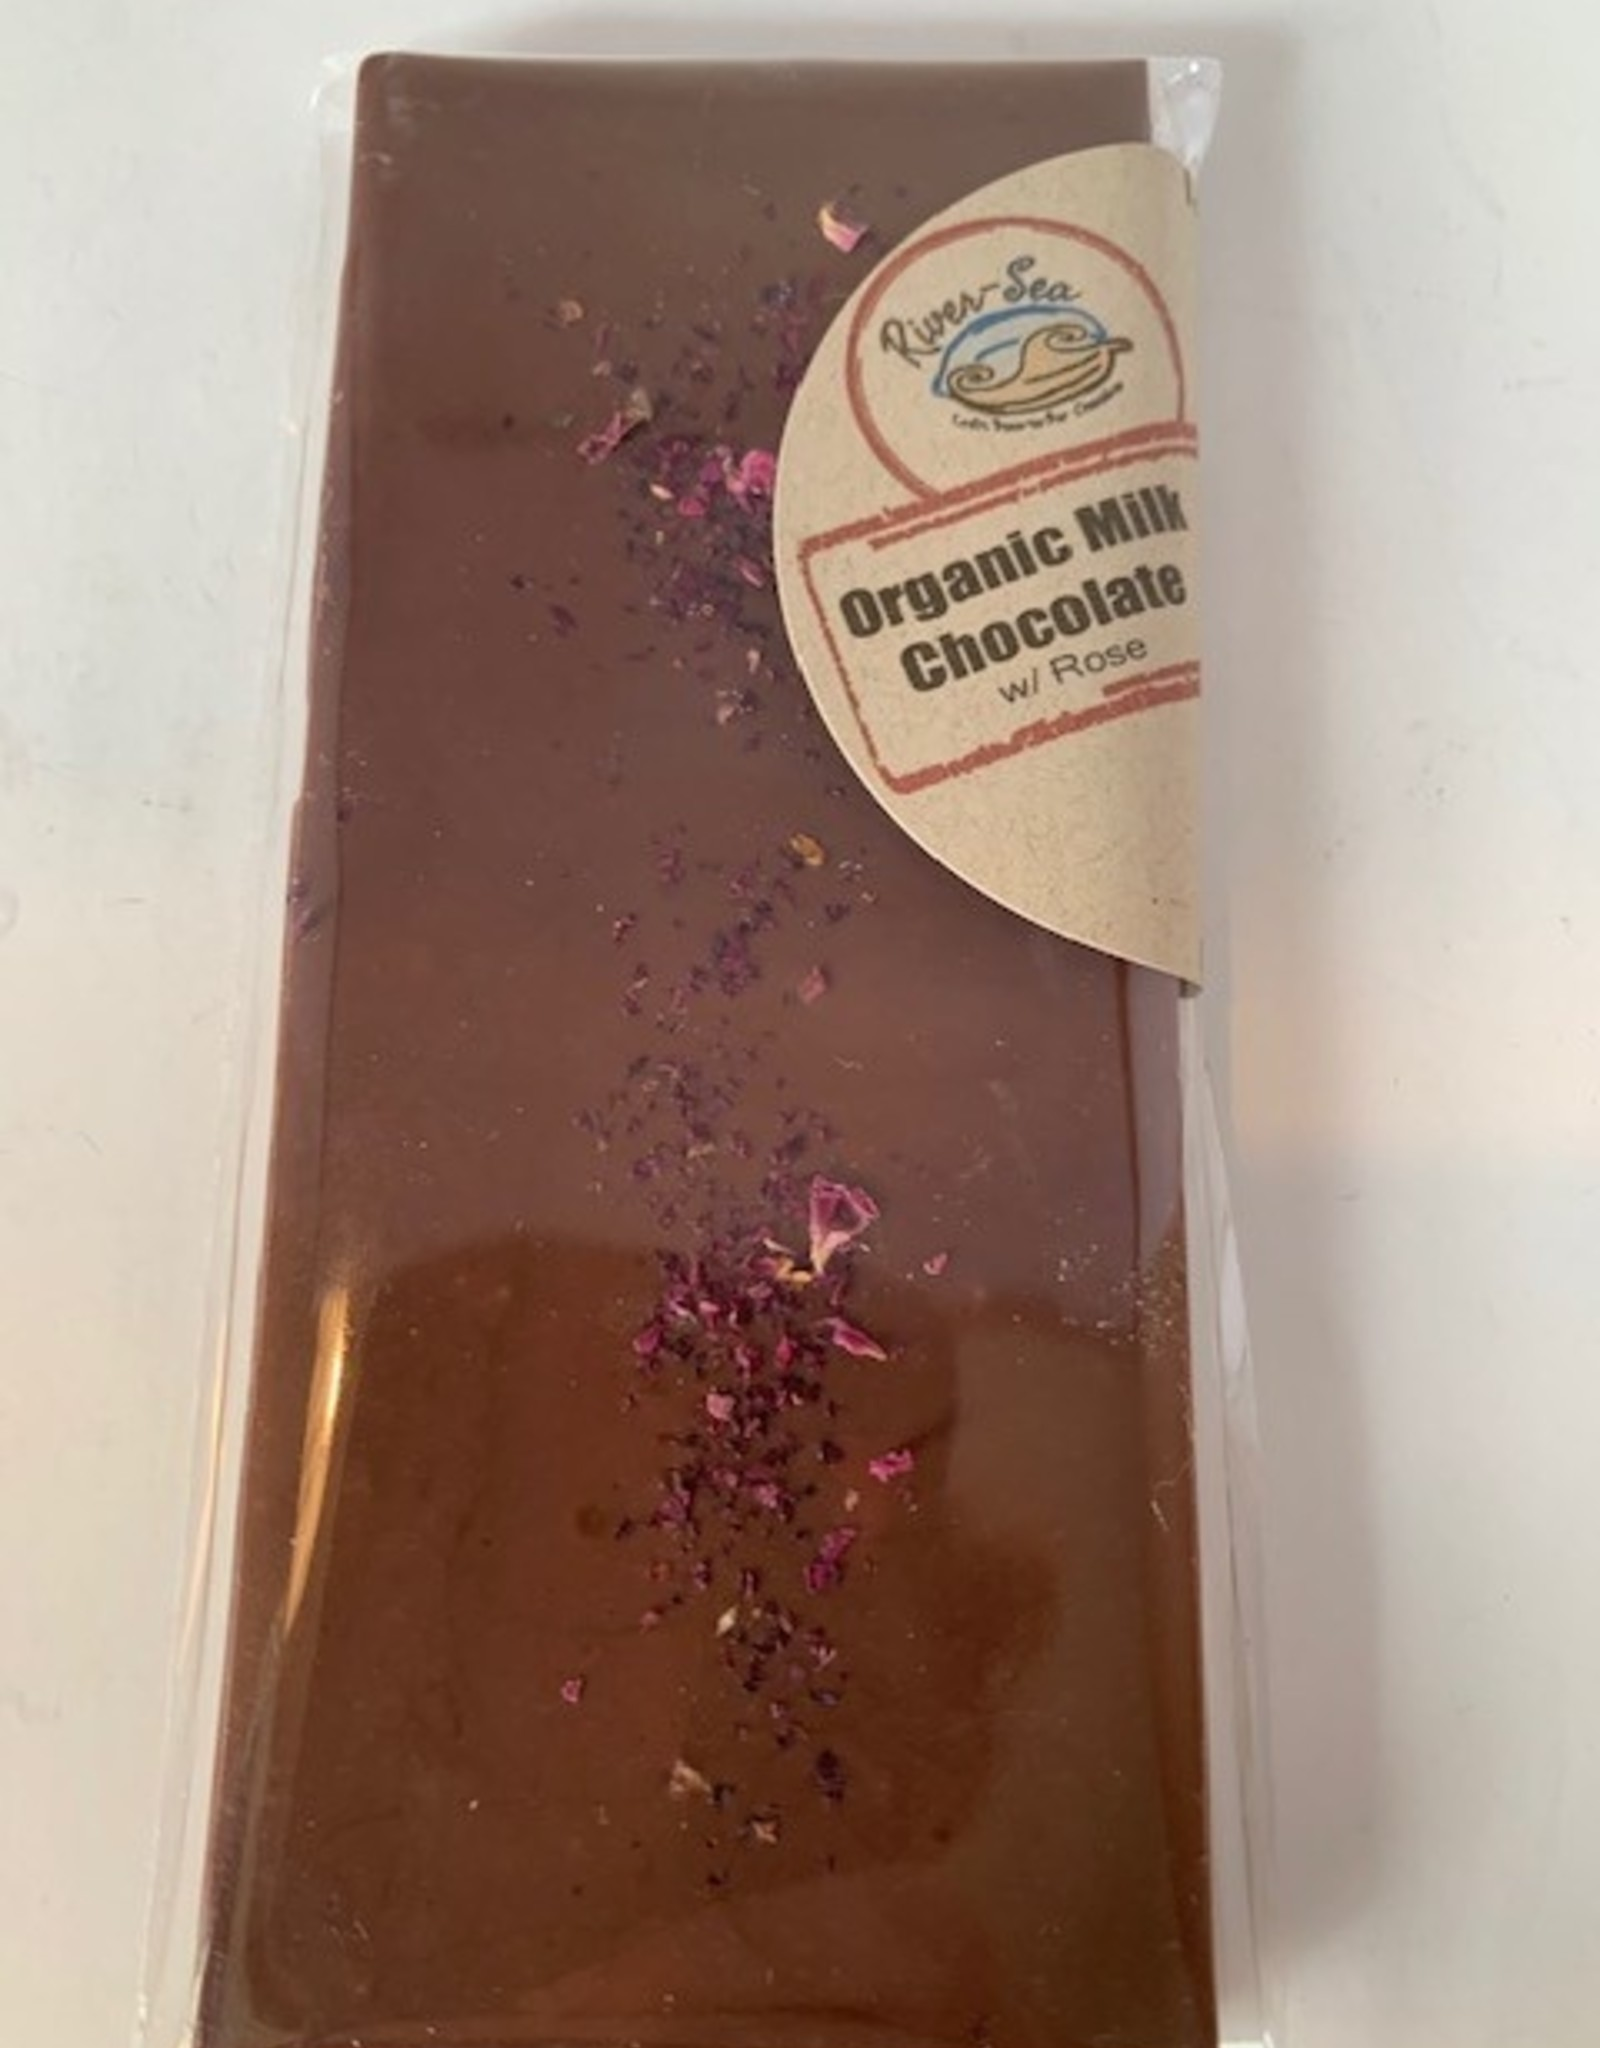 River-Sea Rose Petal Milk Chocolate